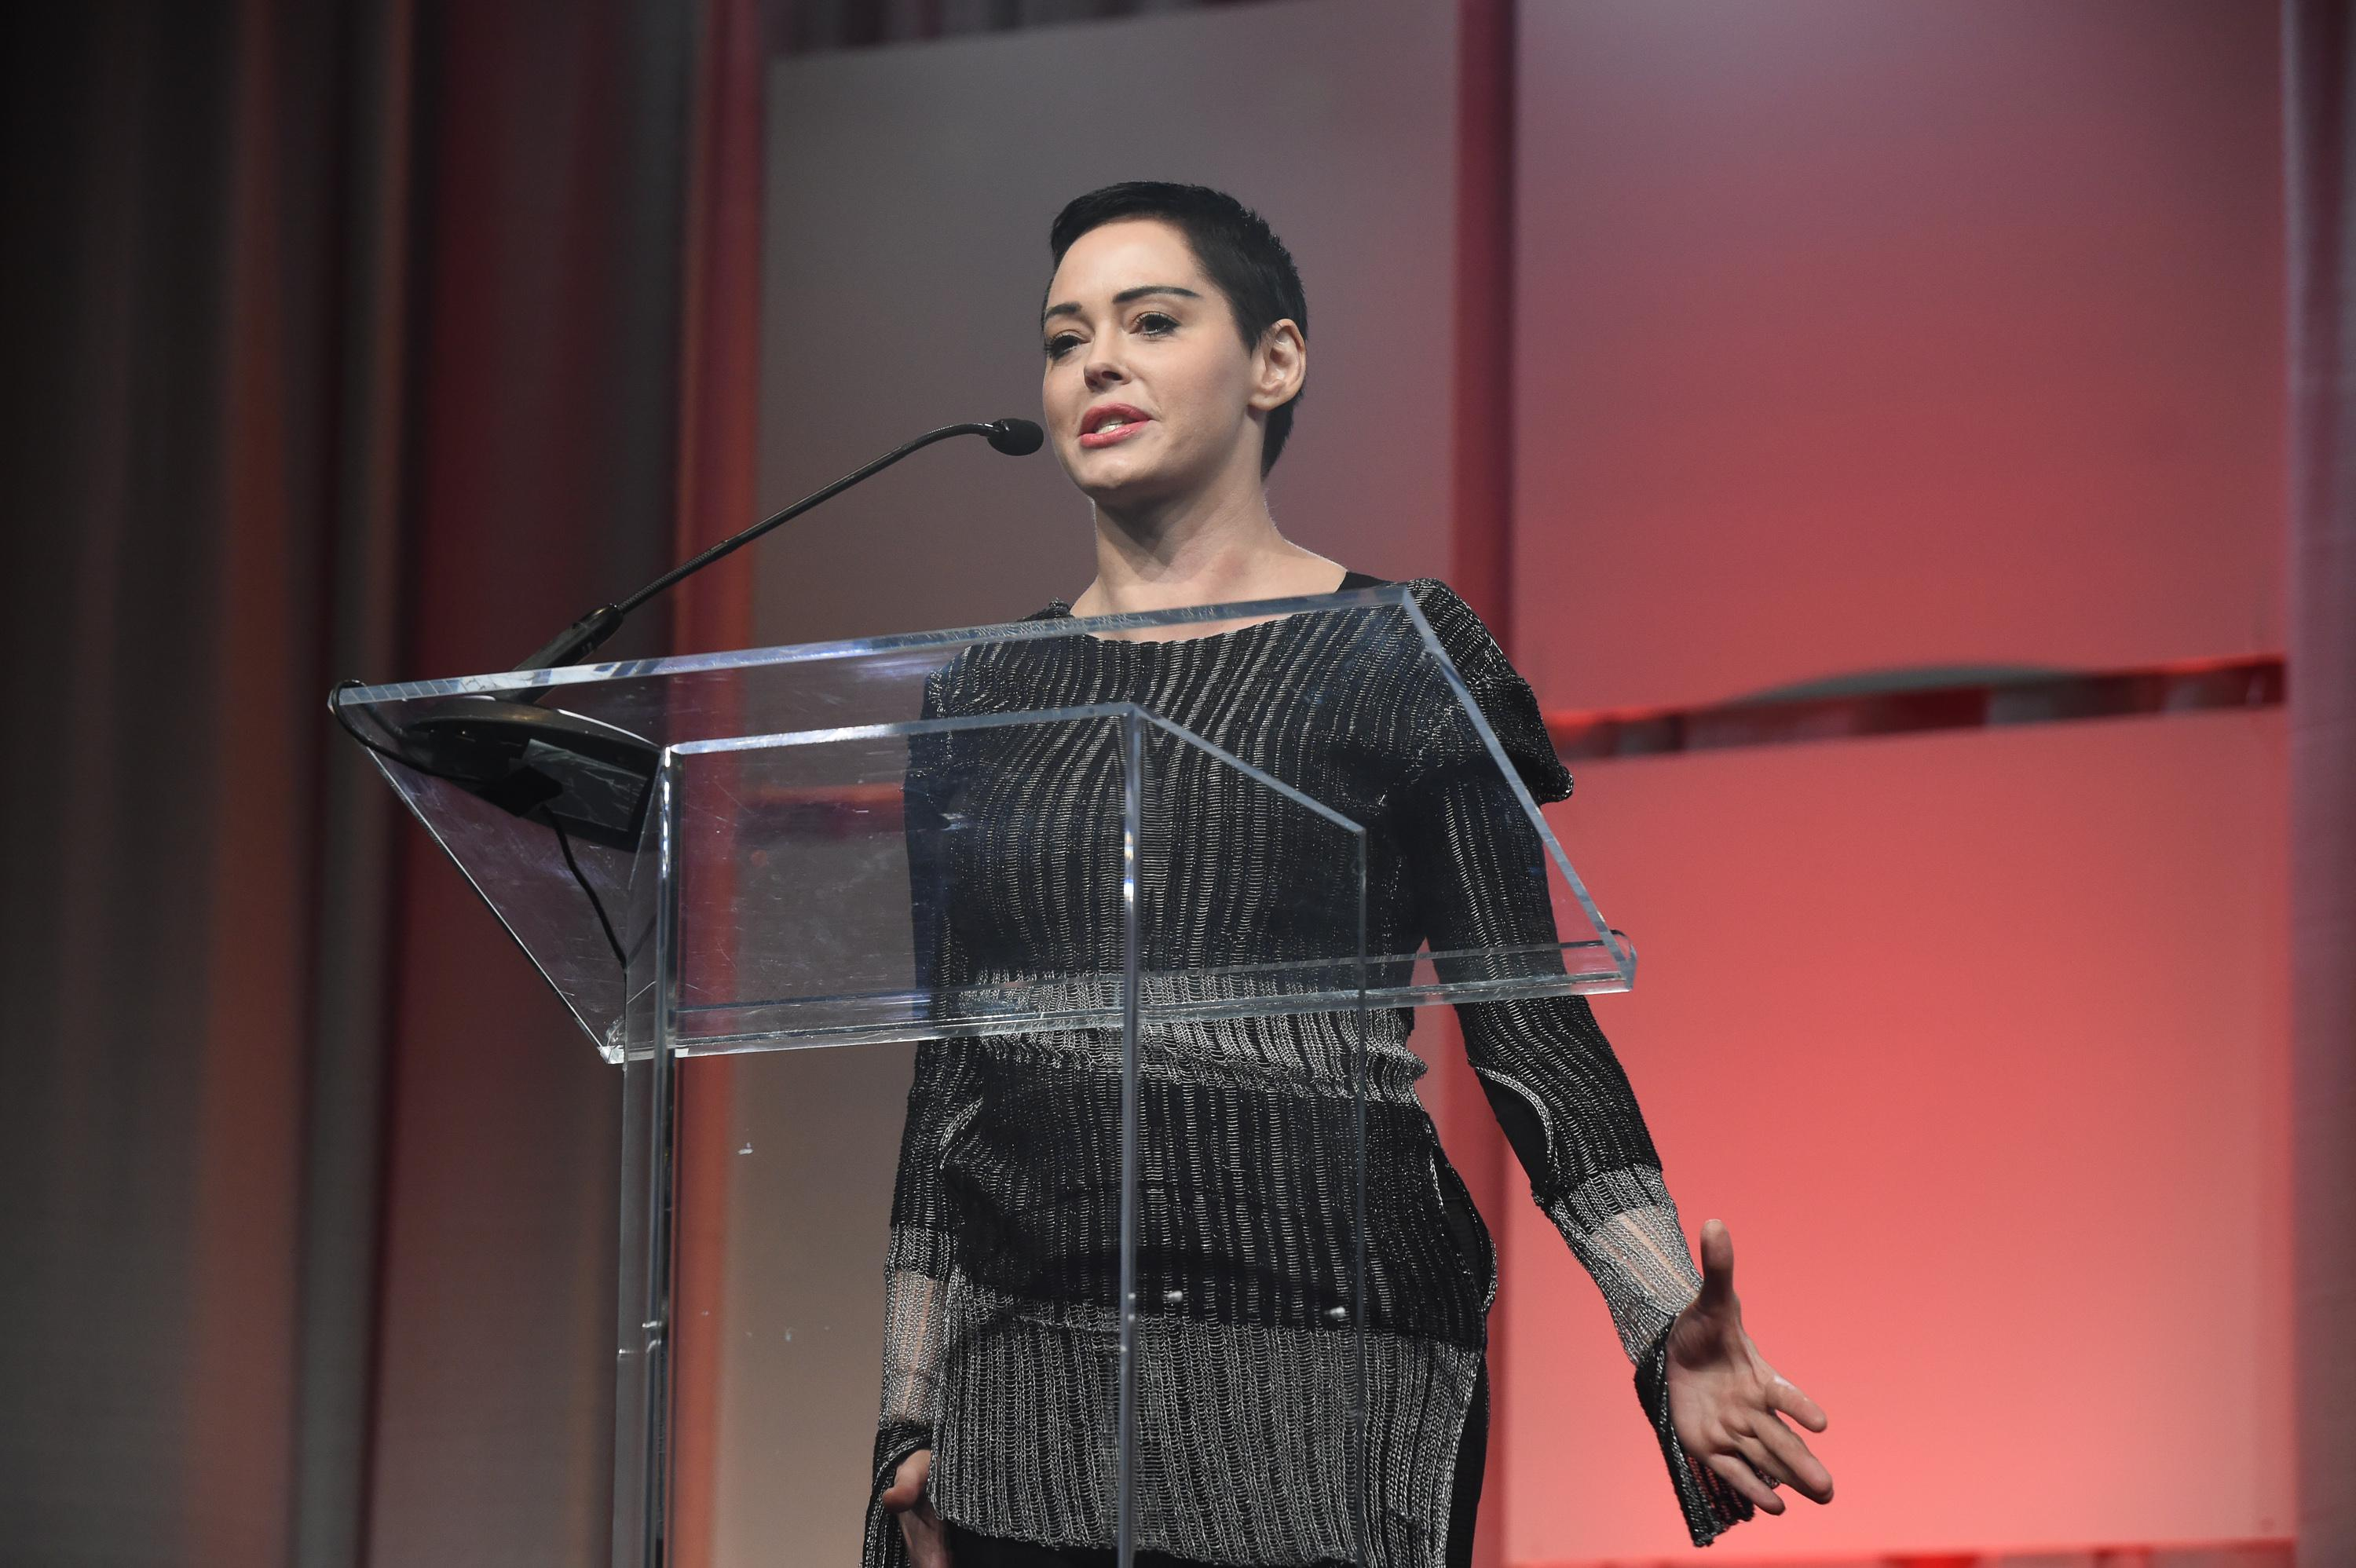 Actress Rose McGowan speaks on stage at The Women's Convention at Cobo Center on October 27, 2017 in Detroit, Michigan..